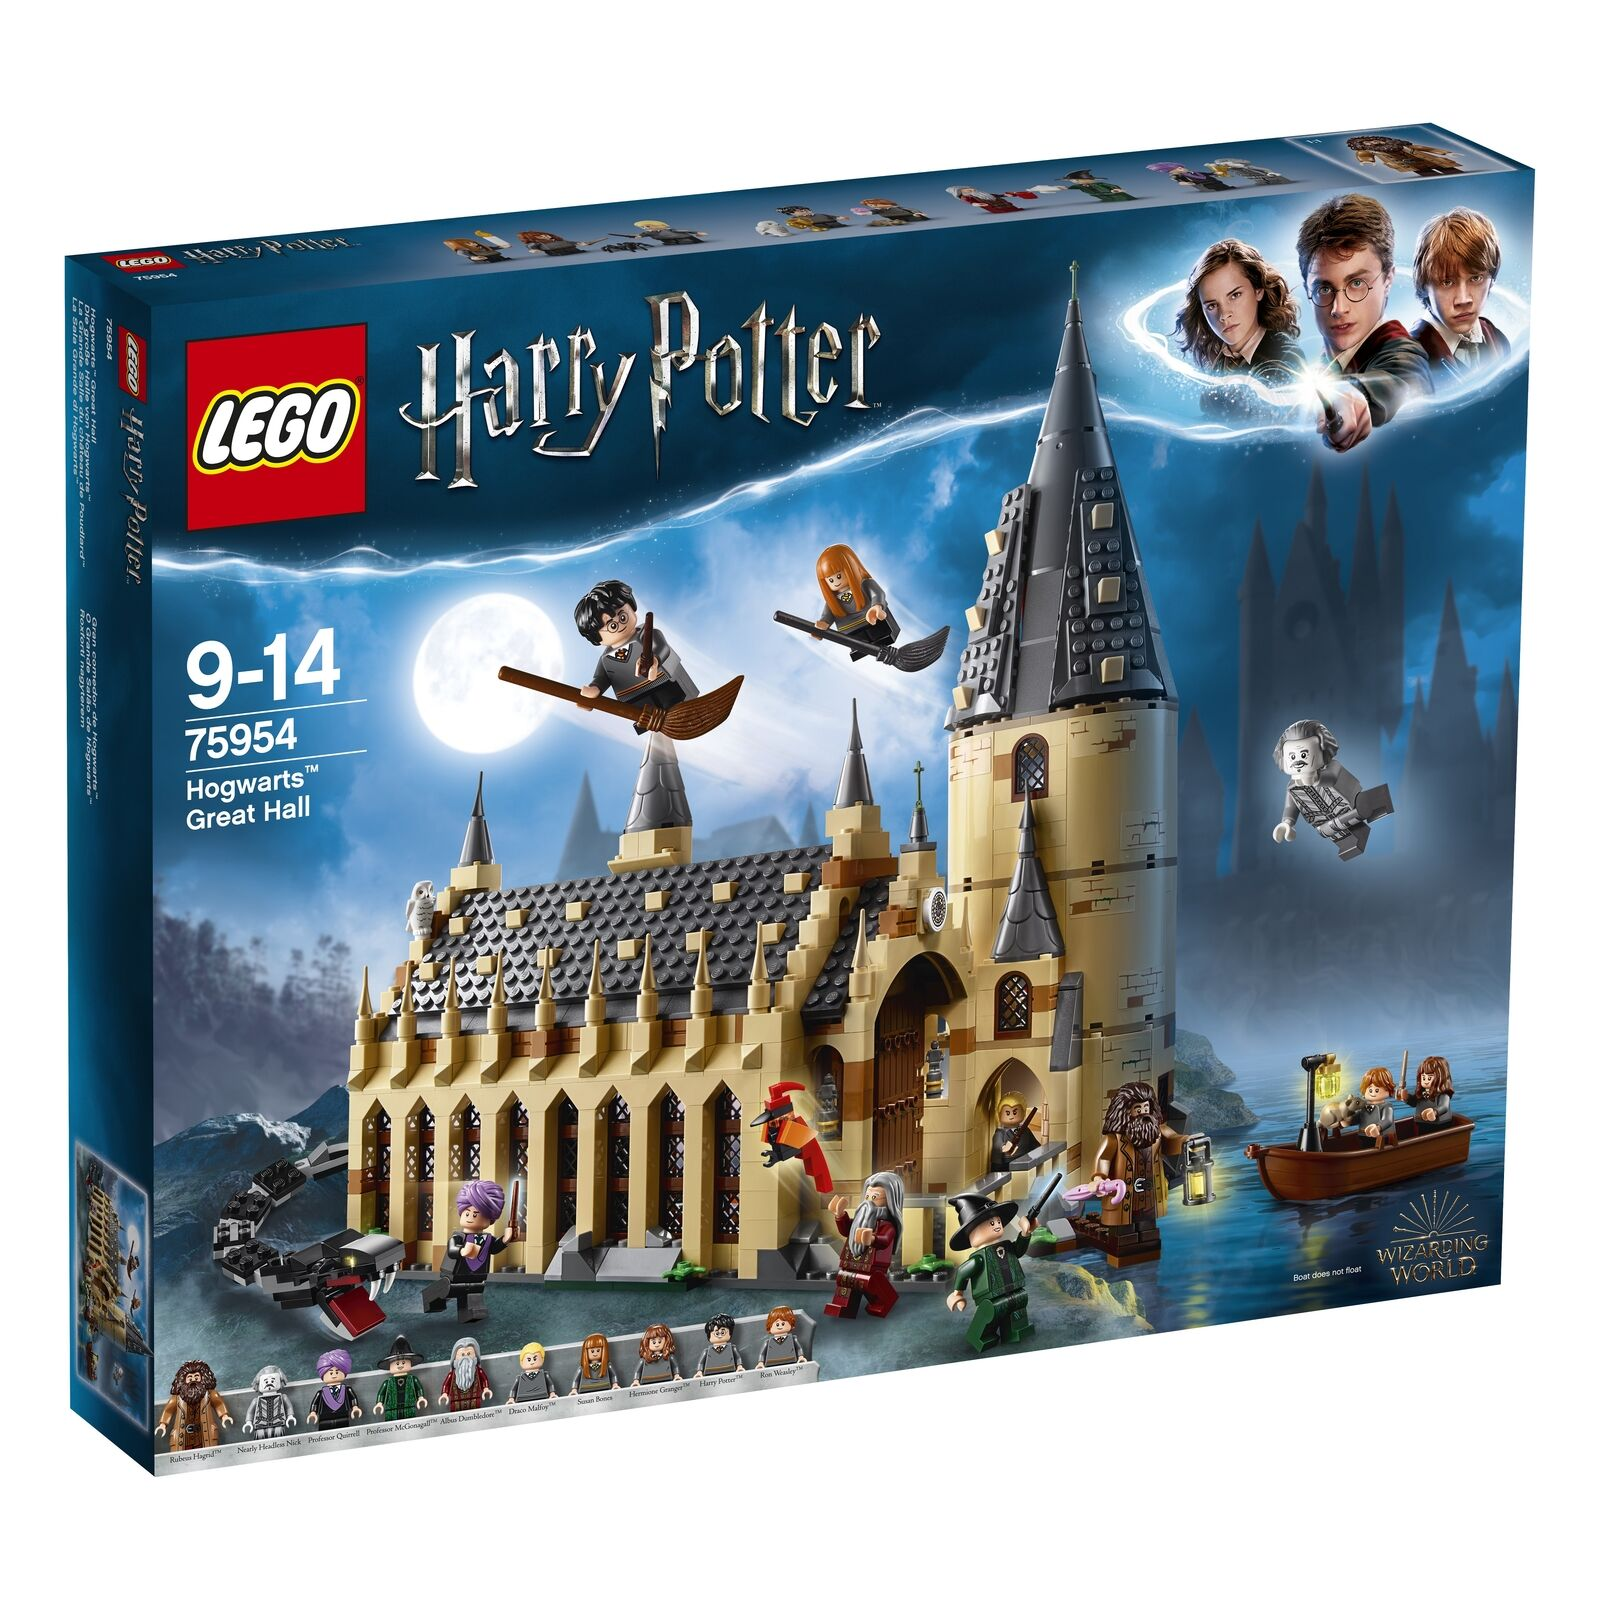 Lego Harry Potter Hogwarts Great Hall (75954) Brand New Unopened